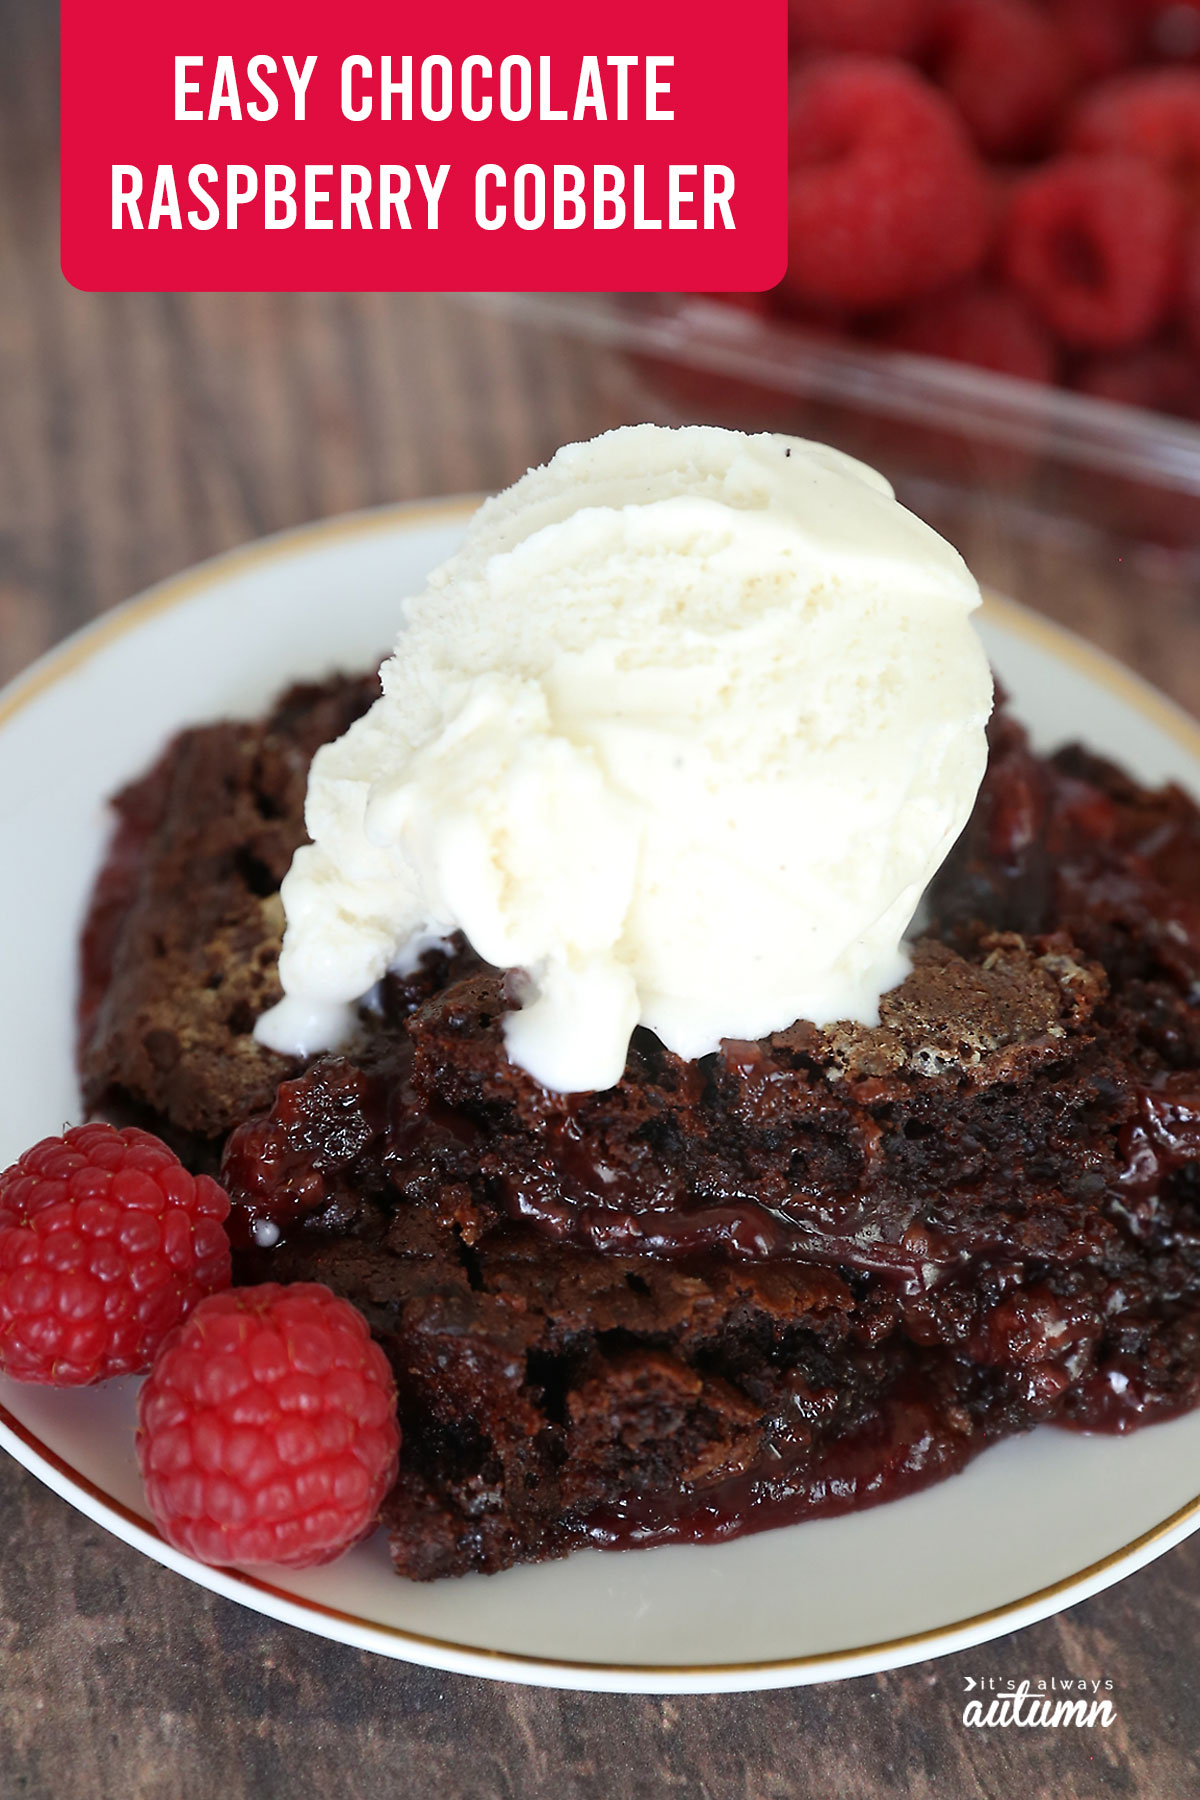 Chocolate raspberry cobbler with raspberries and vanilla ice cream